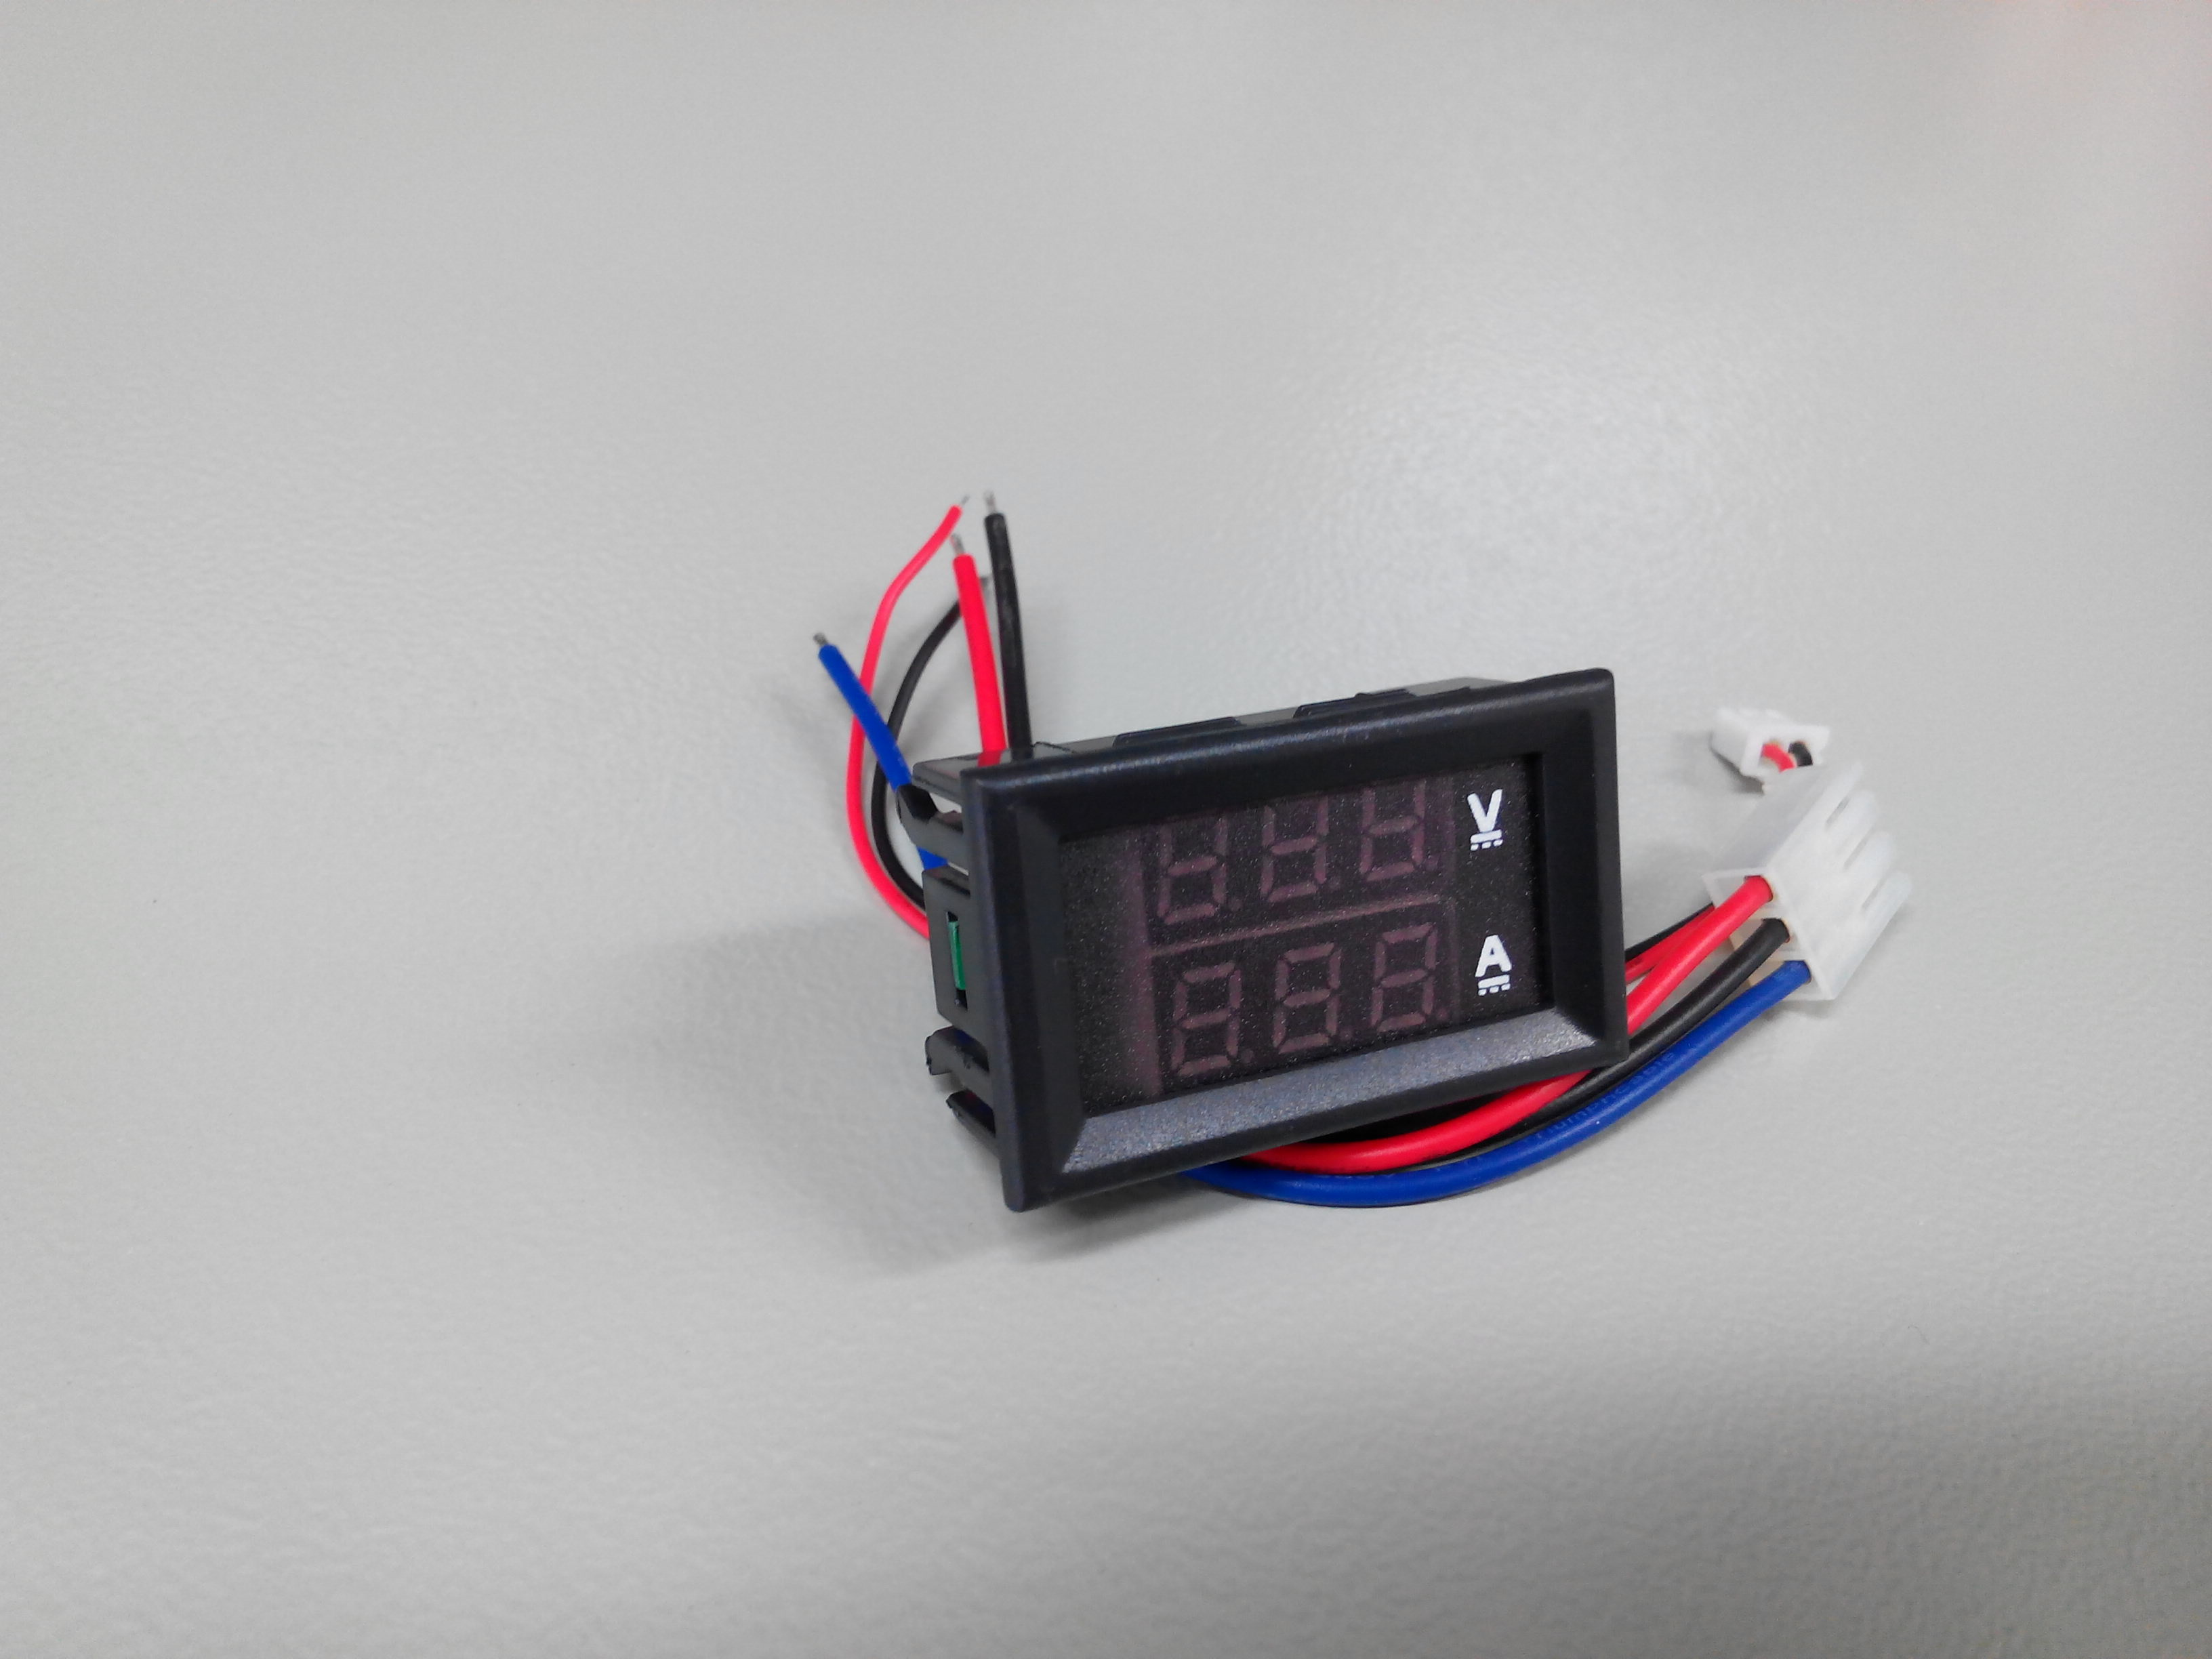 DC 0-100V 10A Digital Voltmeter & Amp-meter / Red Blue LED Dual display Meter